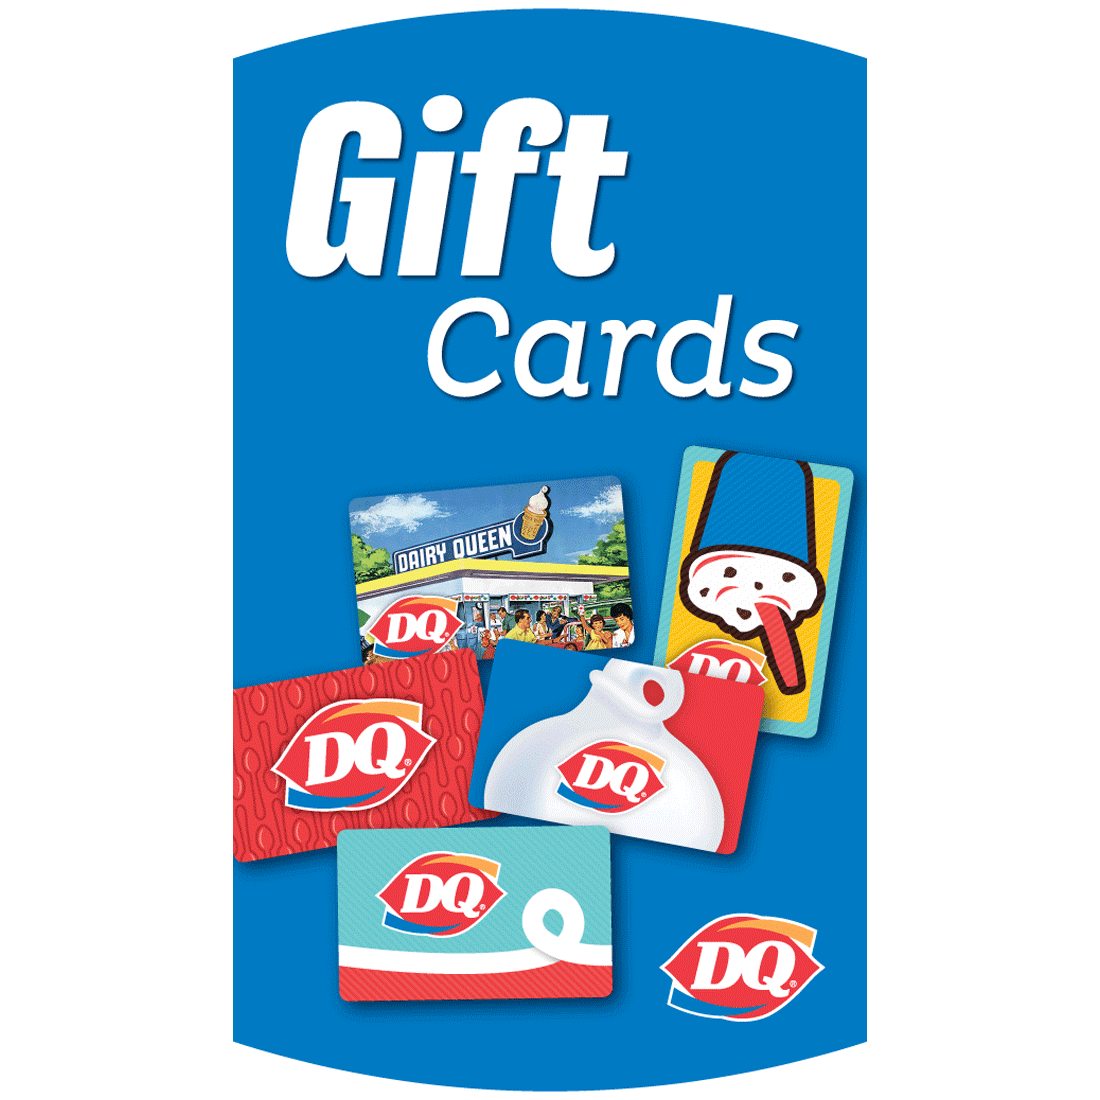 www dq com gift card balance gift cards exterior poster exterior posters 2507